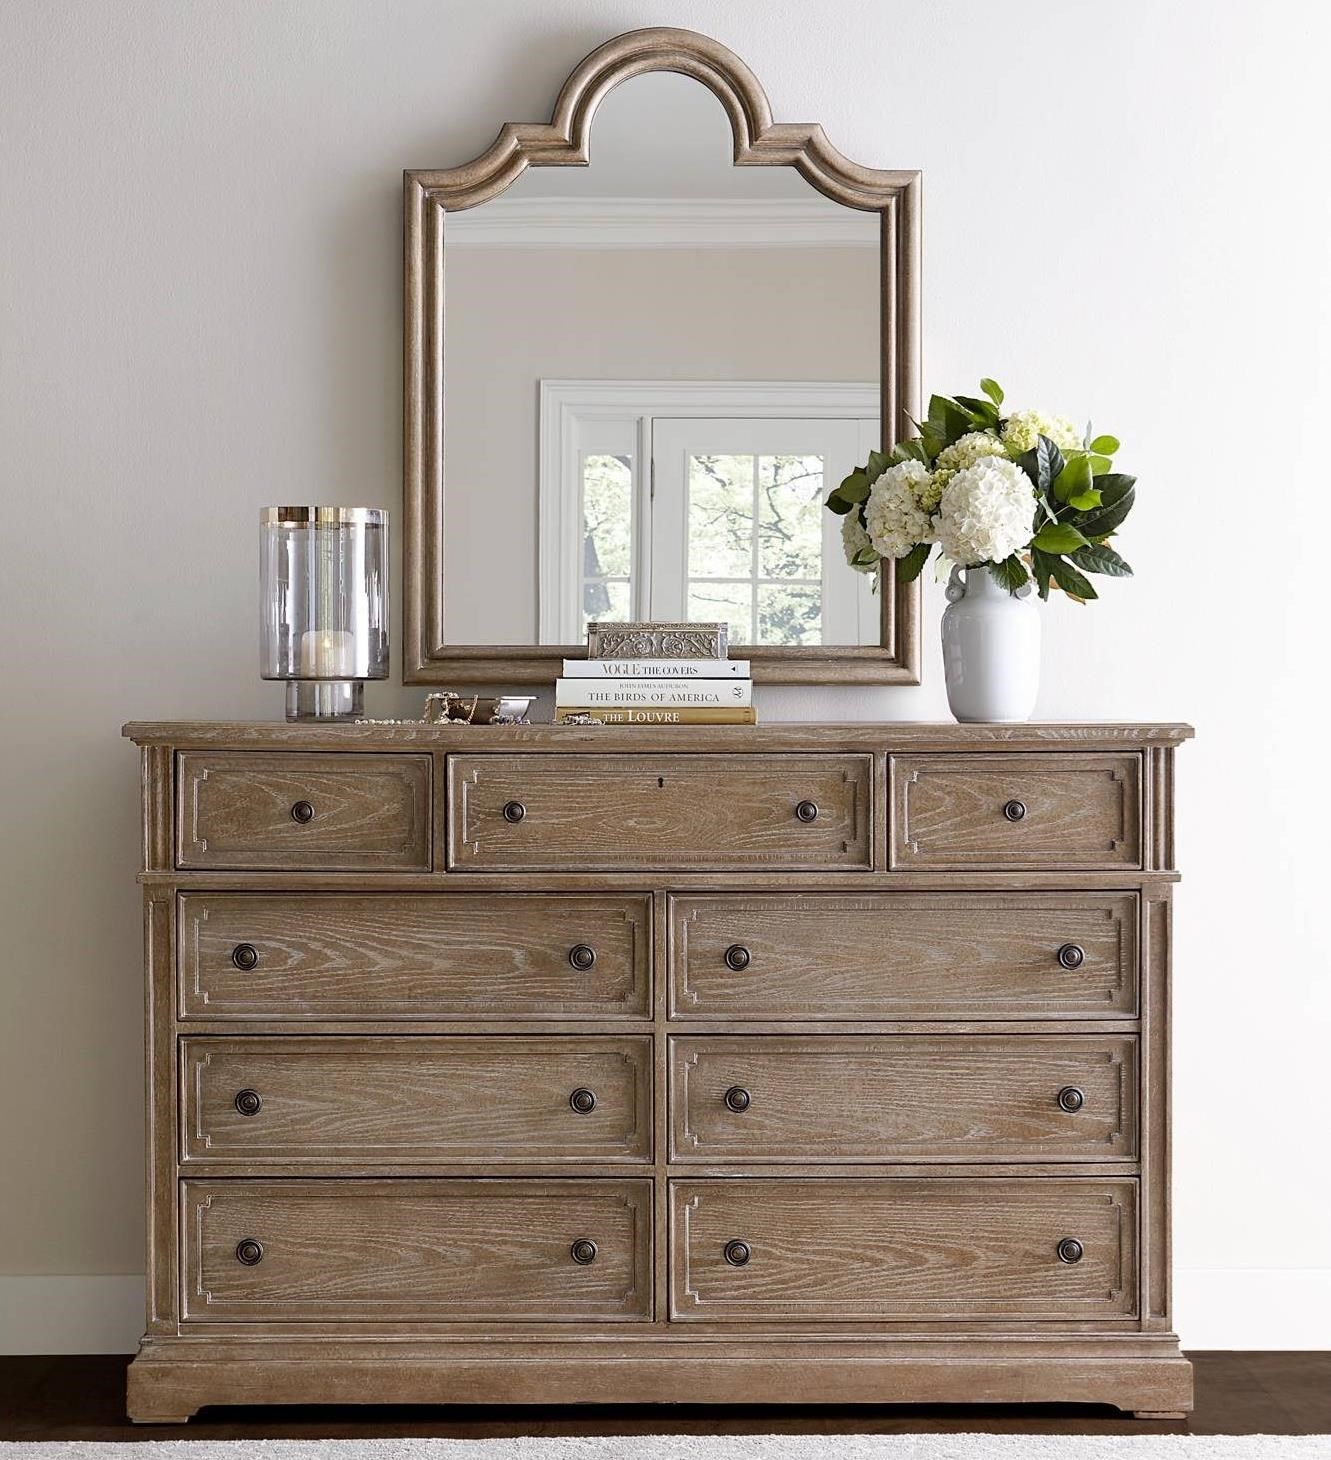 Stanley Furniture Wethersfield Estate Dresser With Flip